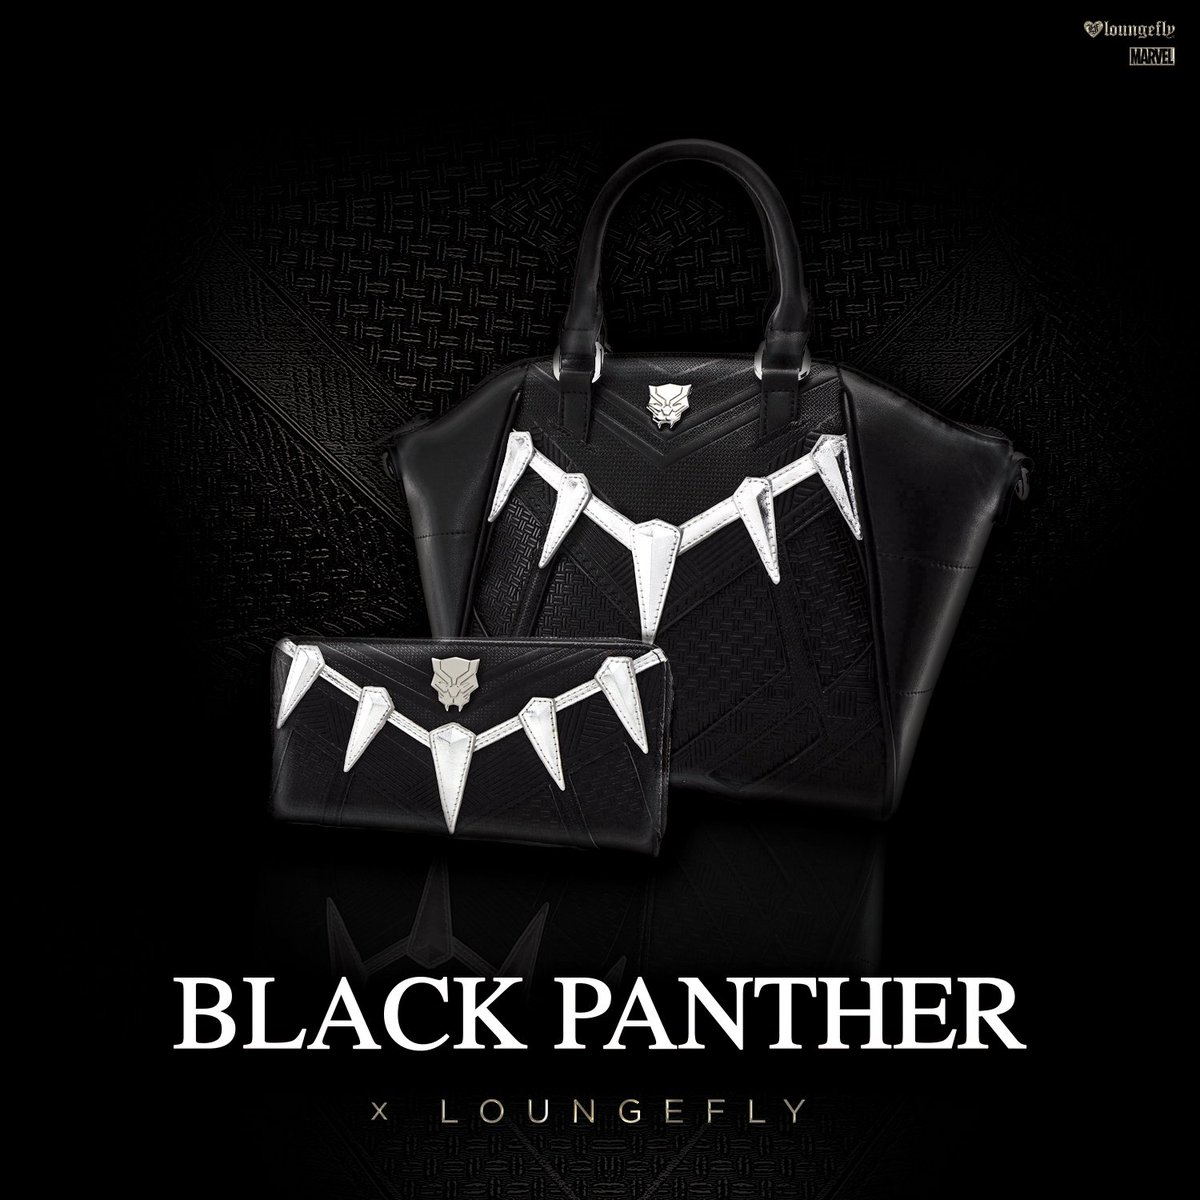 Check out the new @Loungefly #BlackPanth...